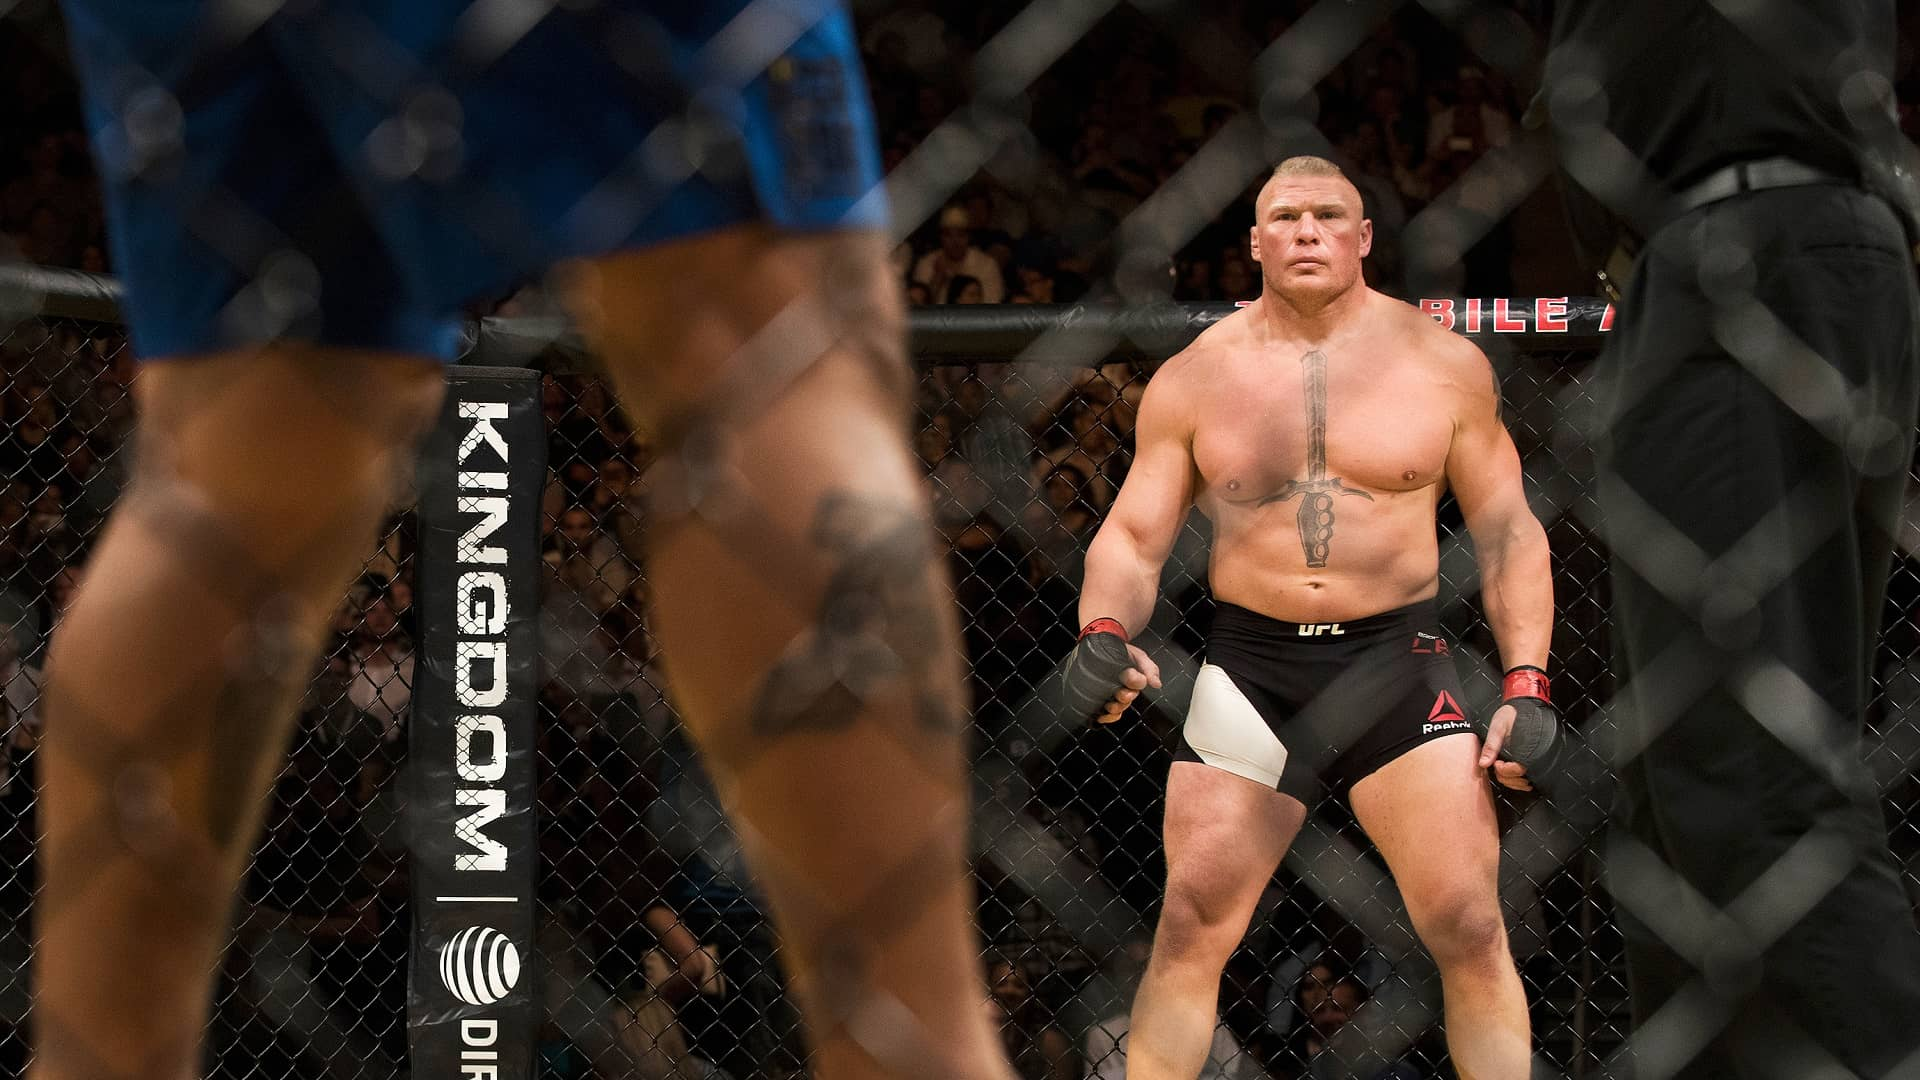 Brock-Lesnar-UFC-Potential-Return